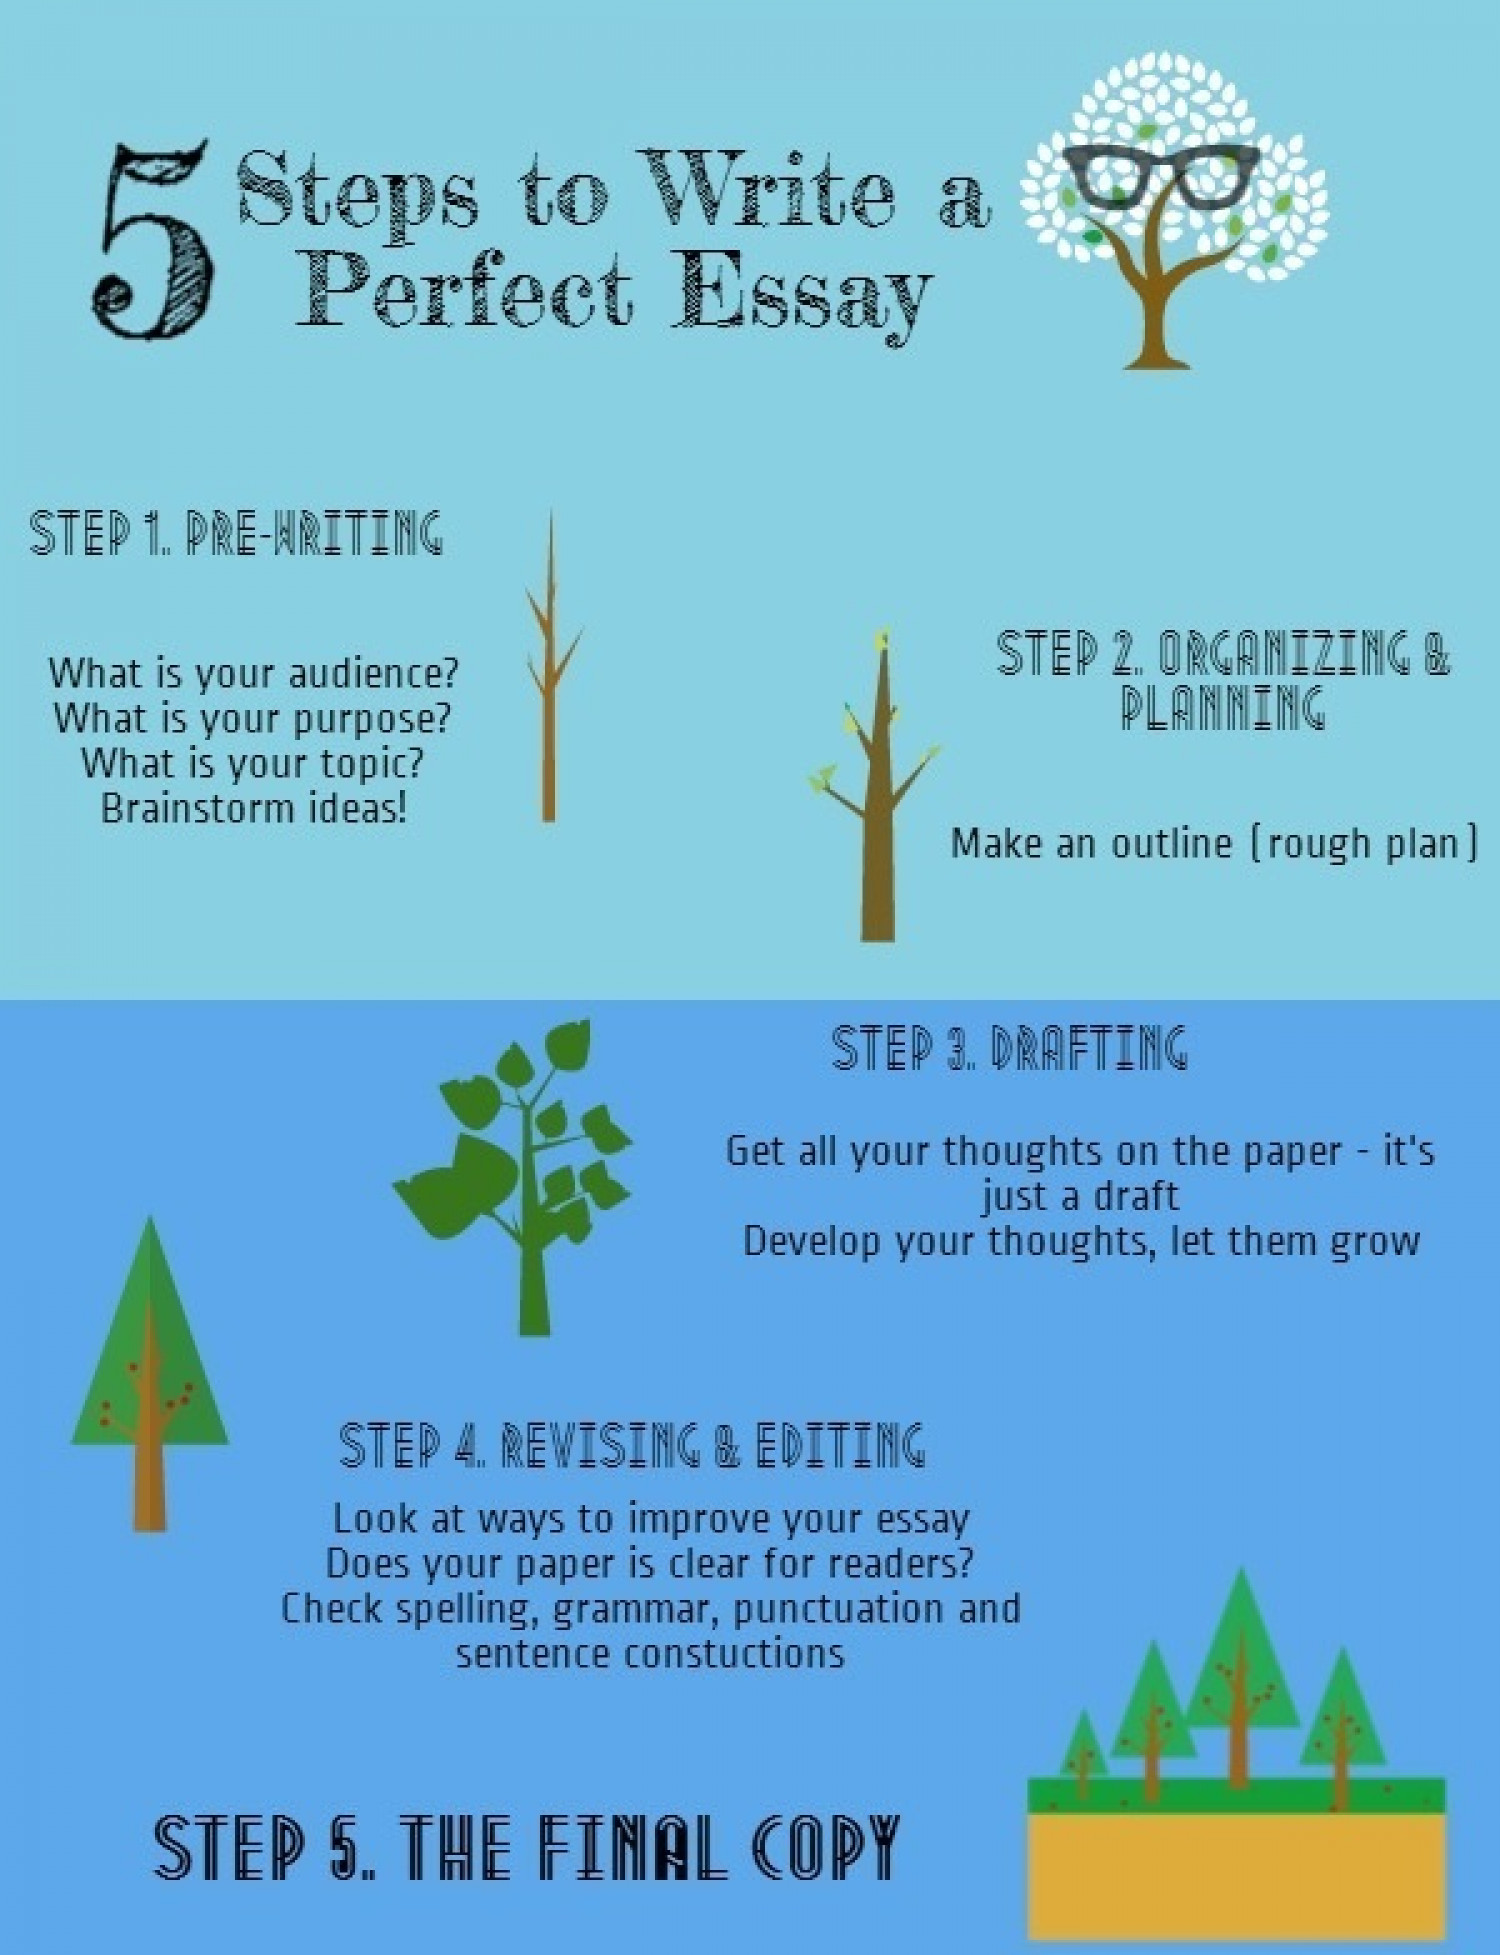 the perfect essay custom essays writing help useful tips for essay  steps to write a perfect essay ly 5 steps to write a perfect essay infographic